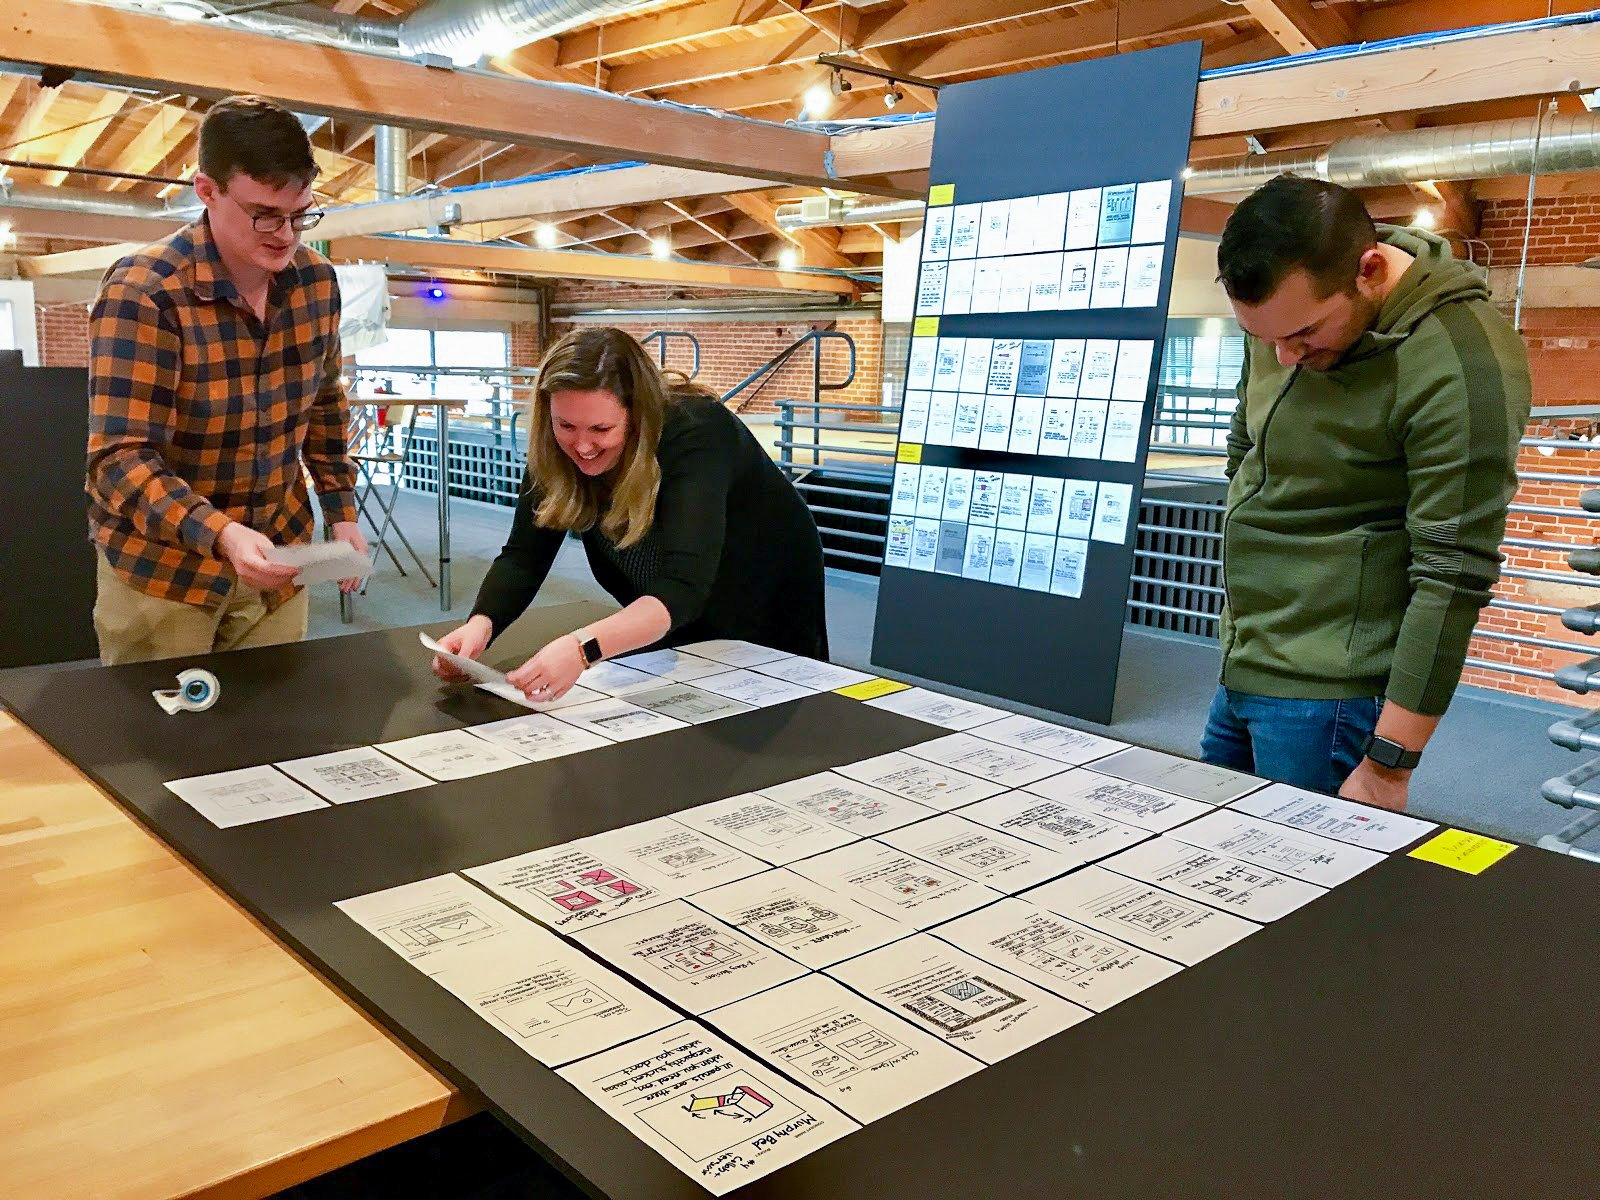 UX consultants prepare concept cards for an upcoming workshop on the mezzanine level of our San Diego design studio.